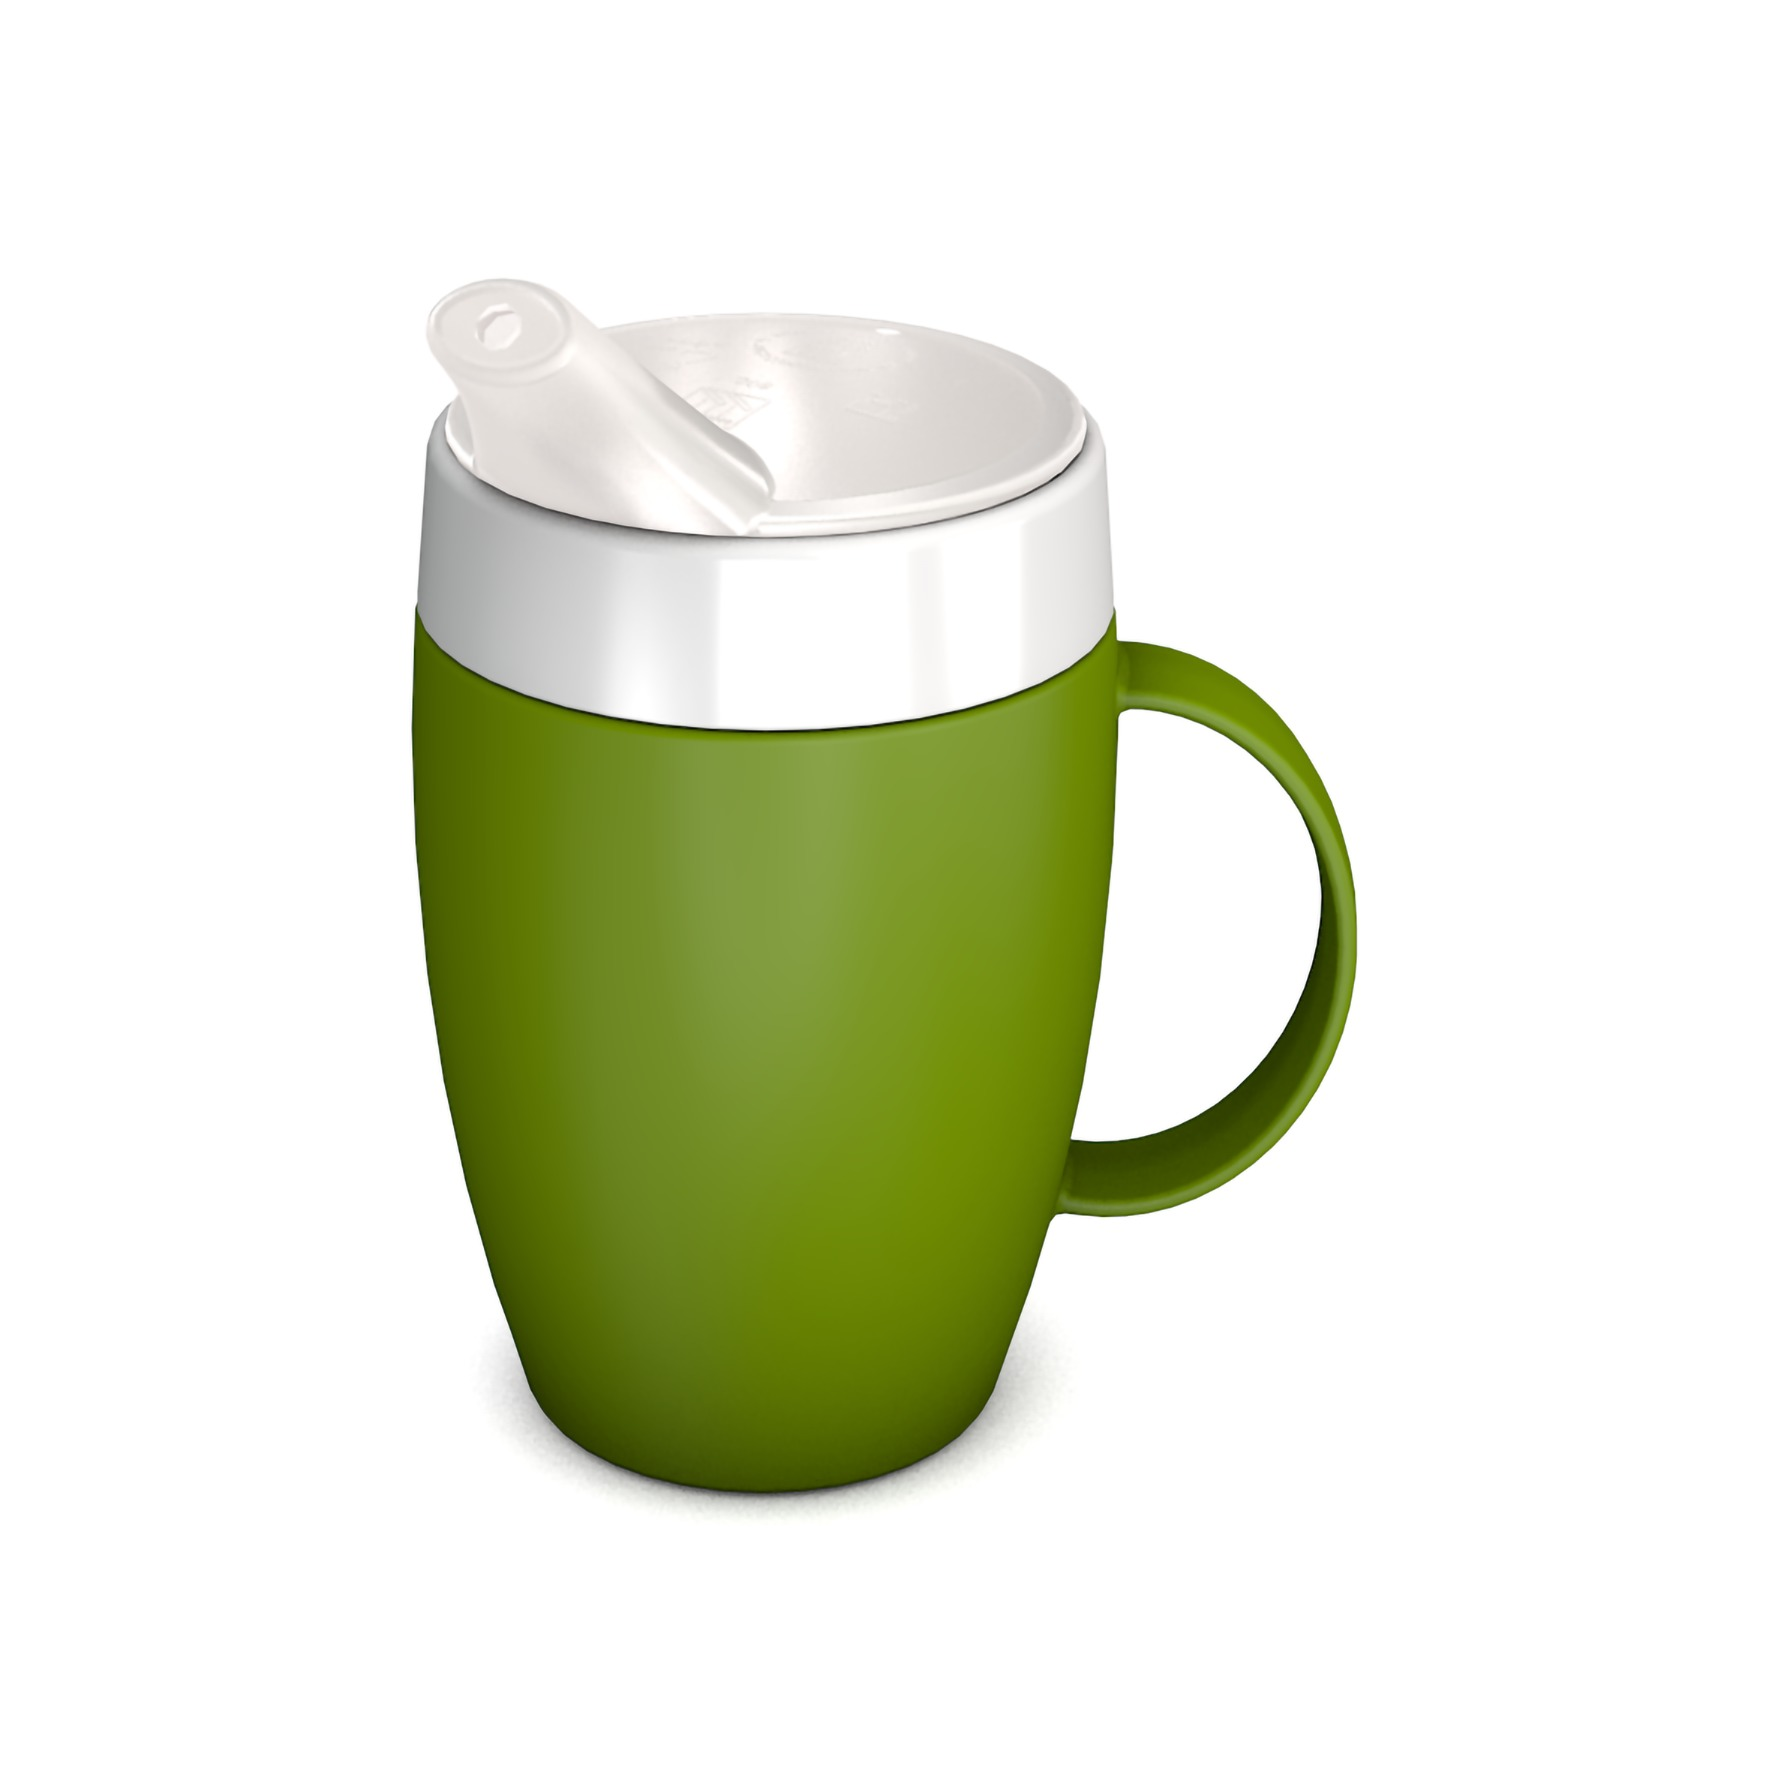 Mug with Internal Cone with Spouted Lid